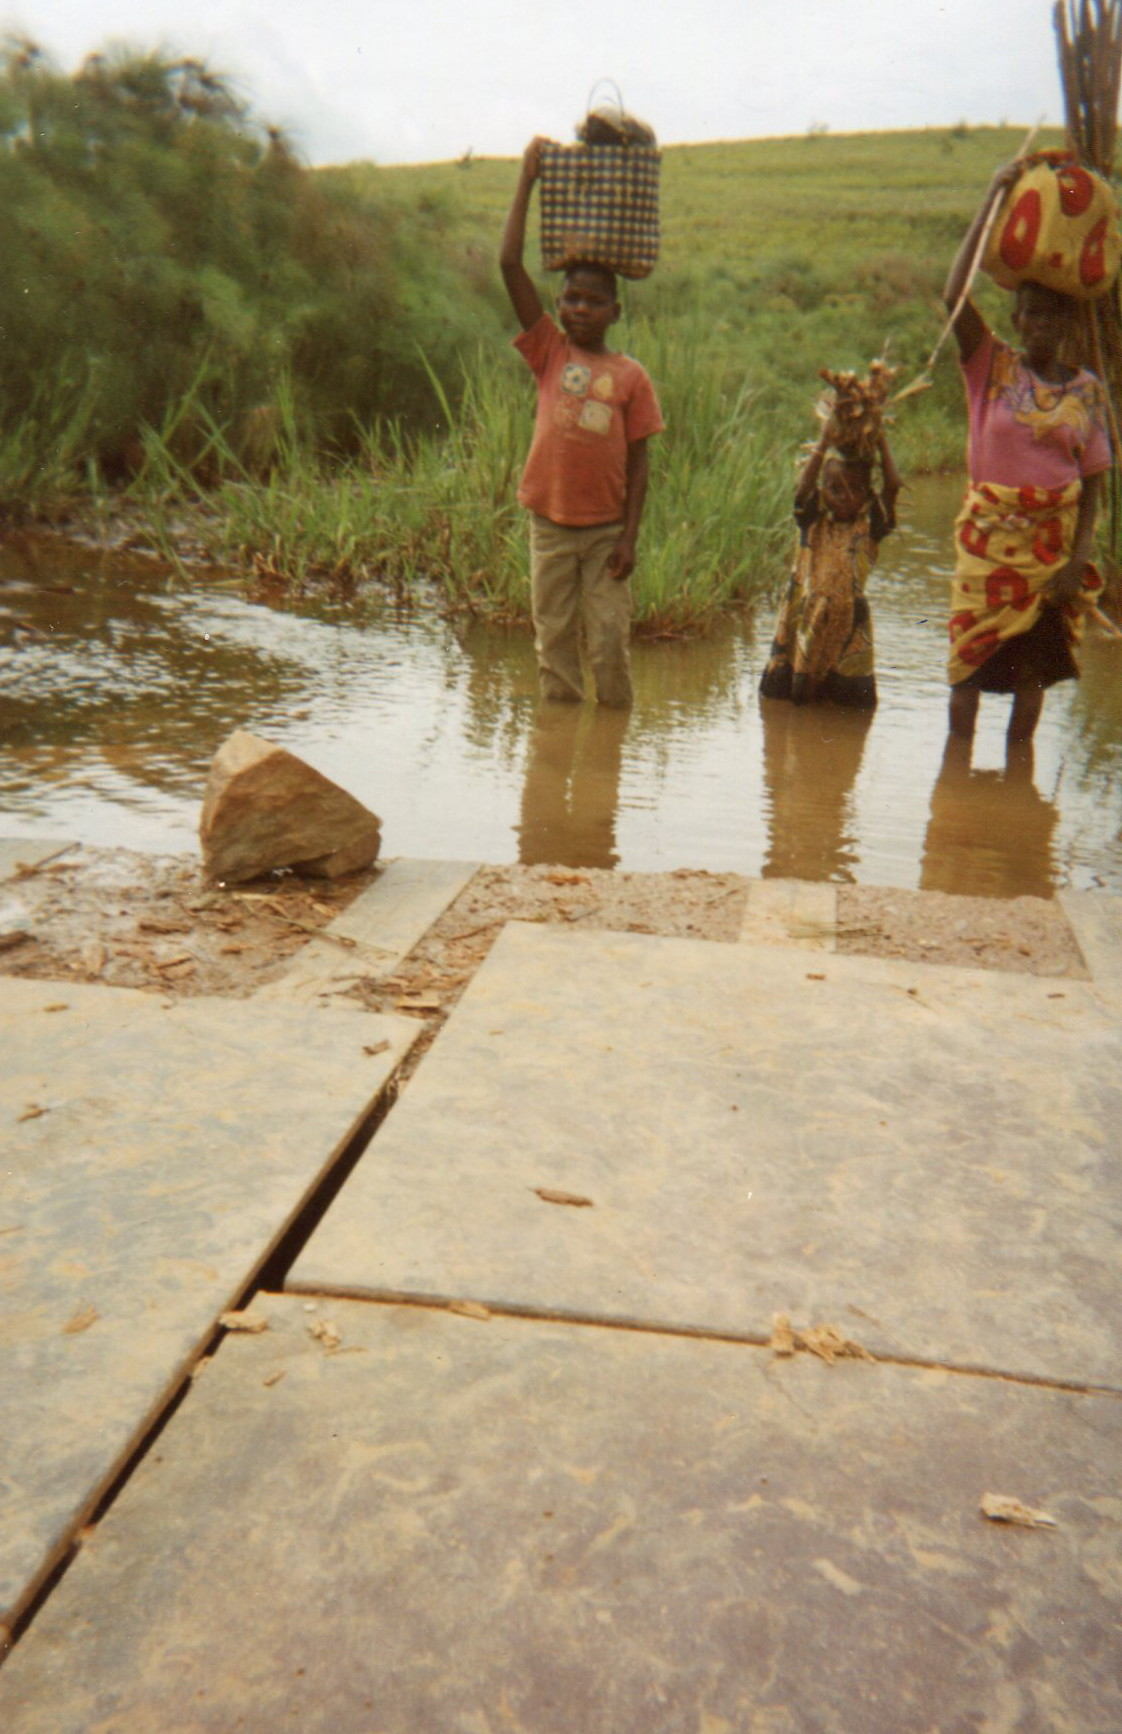 A river crossing that is posing a problem to some women farmers.